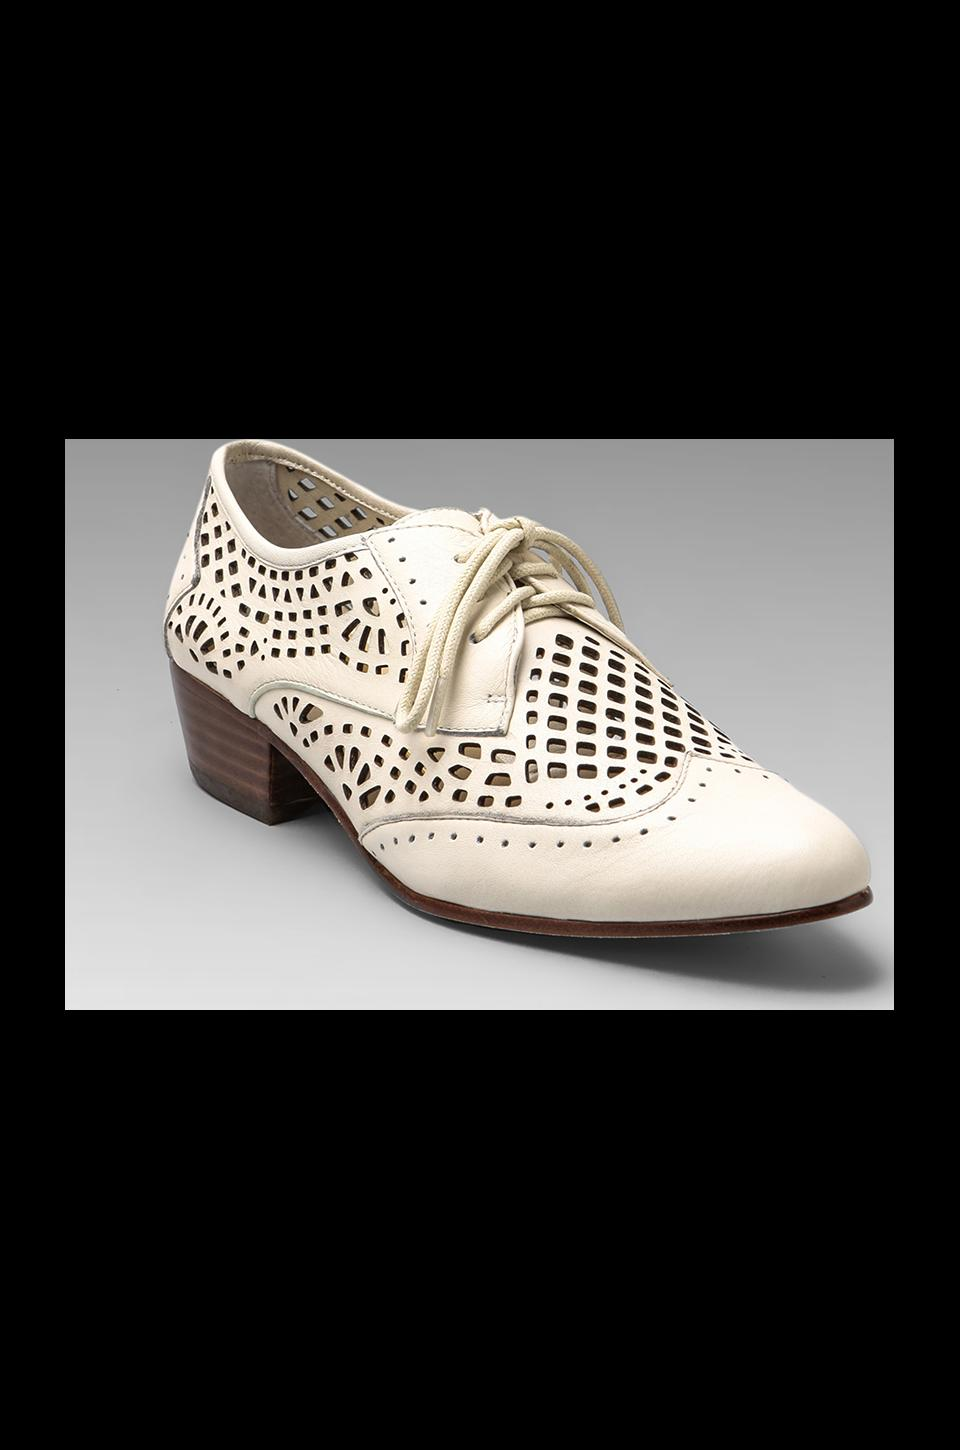 Dolce Vita Orina Oxford Flat in Bone